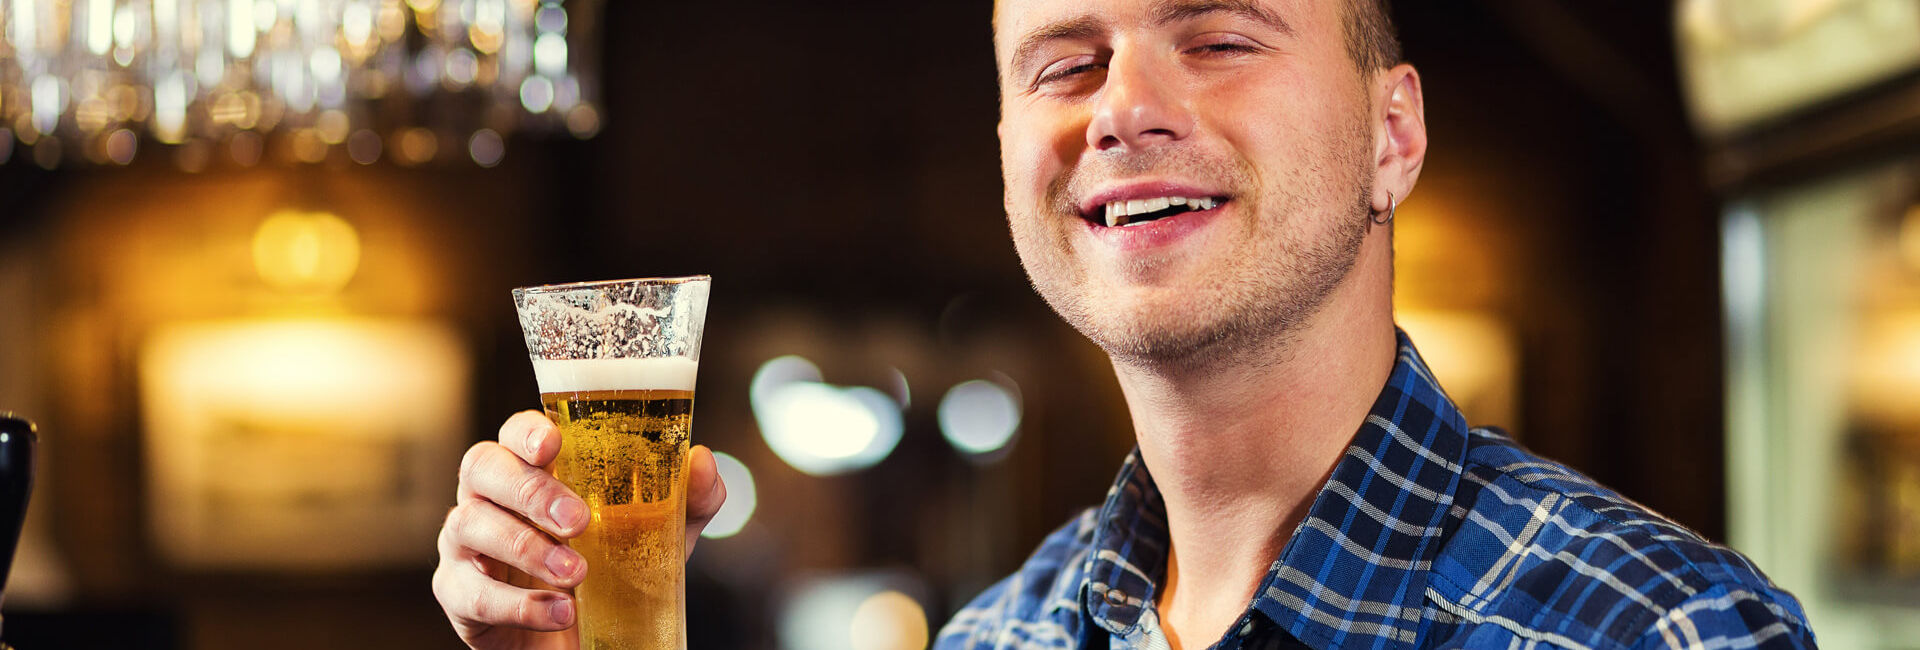 Man enjoys his self tapped beer - pub games - Gasterij 't Karrewiel